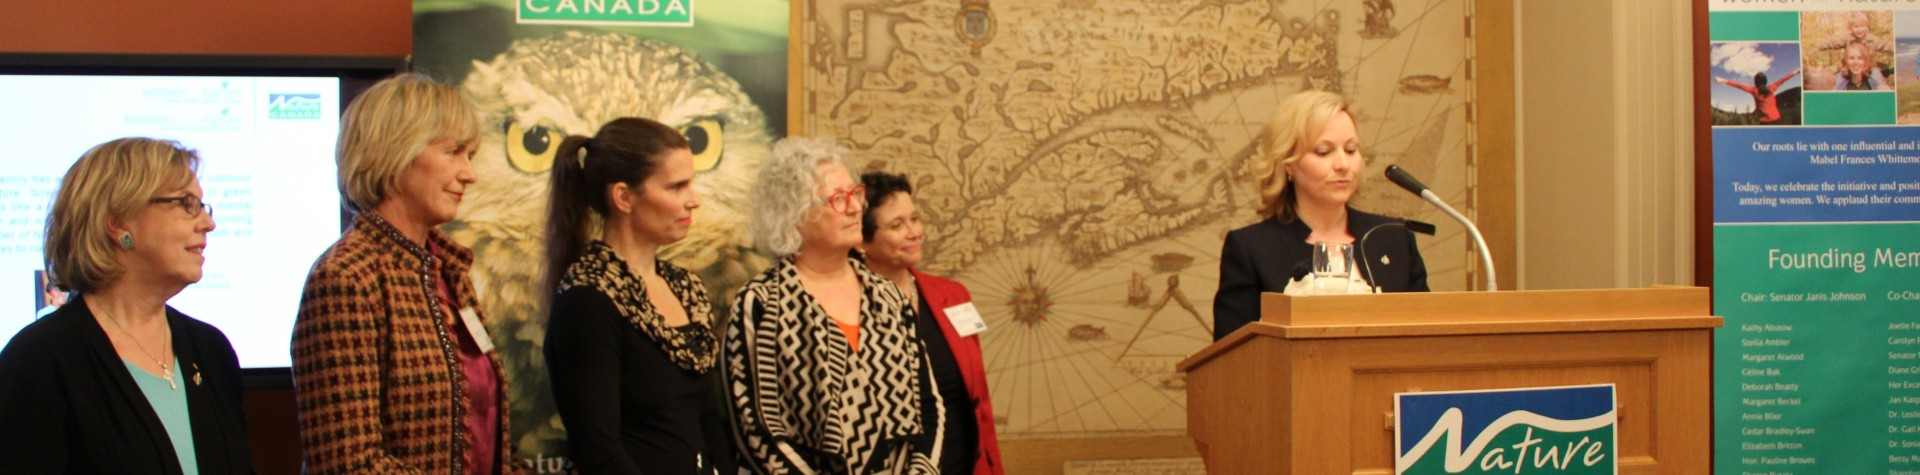 Photo of the Women for Nature event